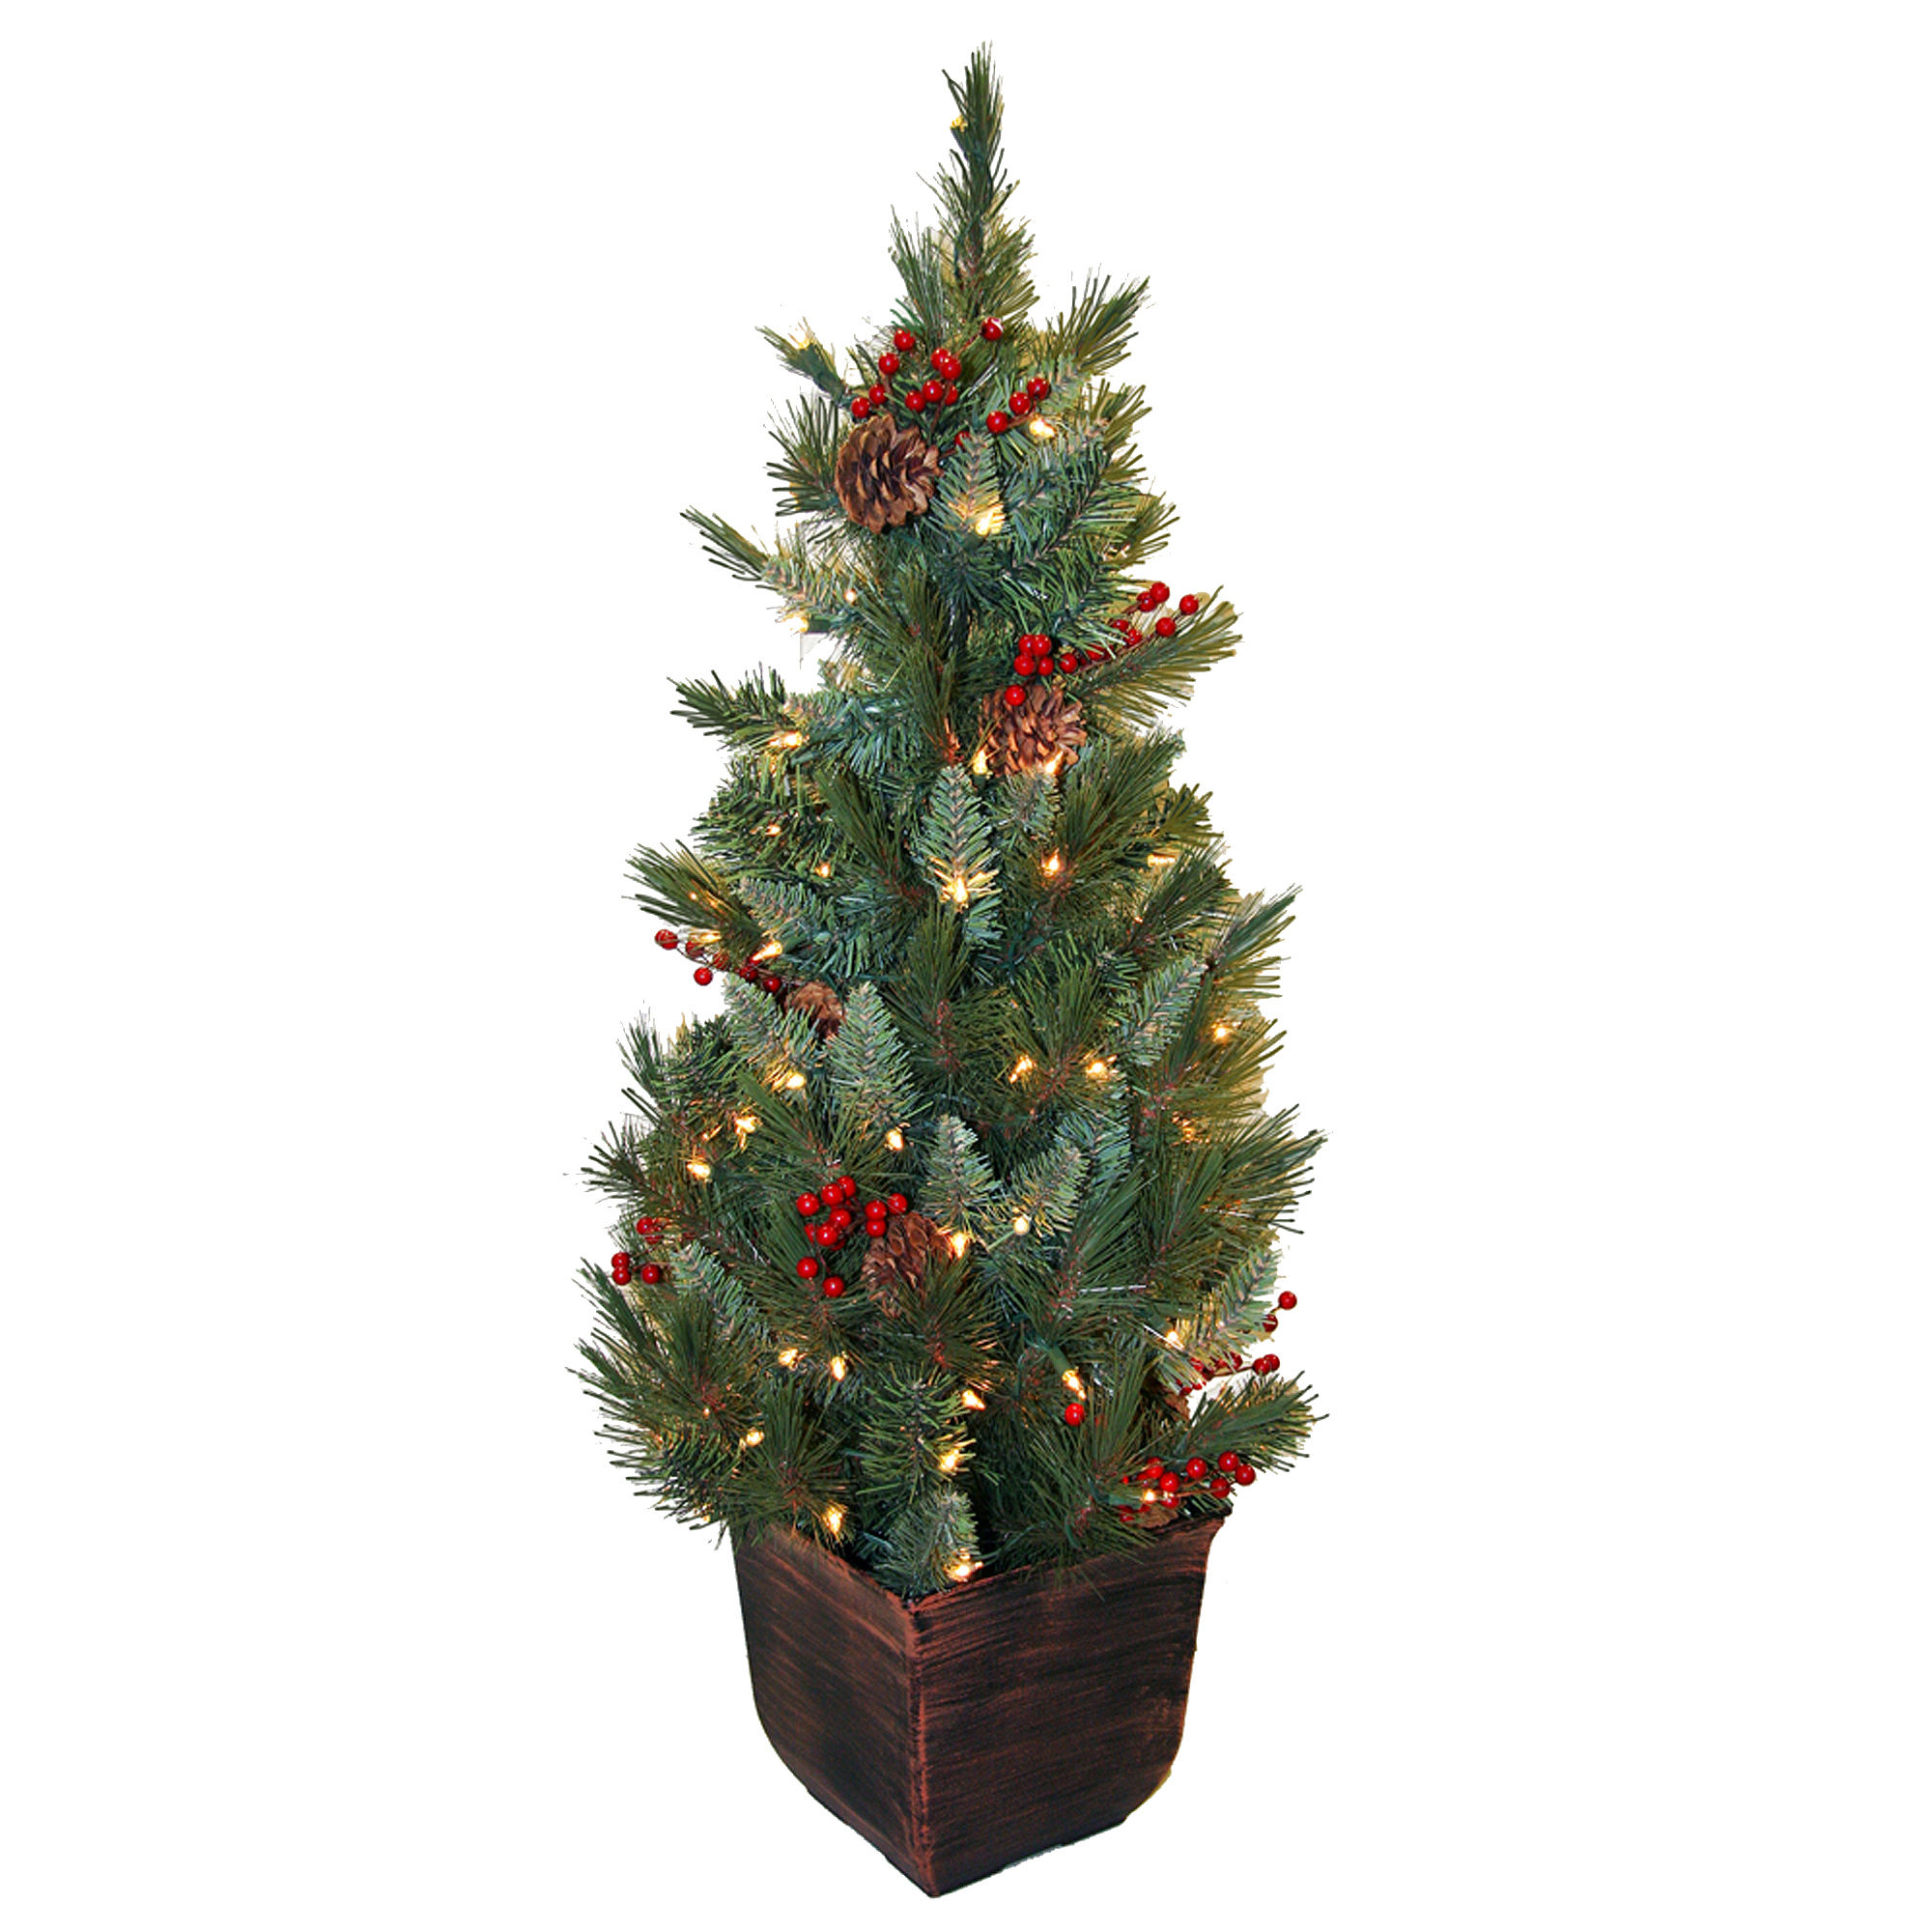 Potted Christmas Trees - Buy Potted Christmas Tree Online ...